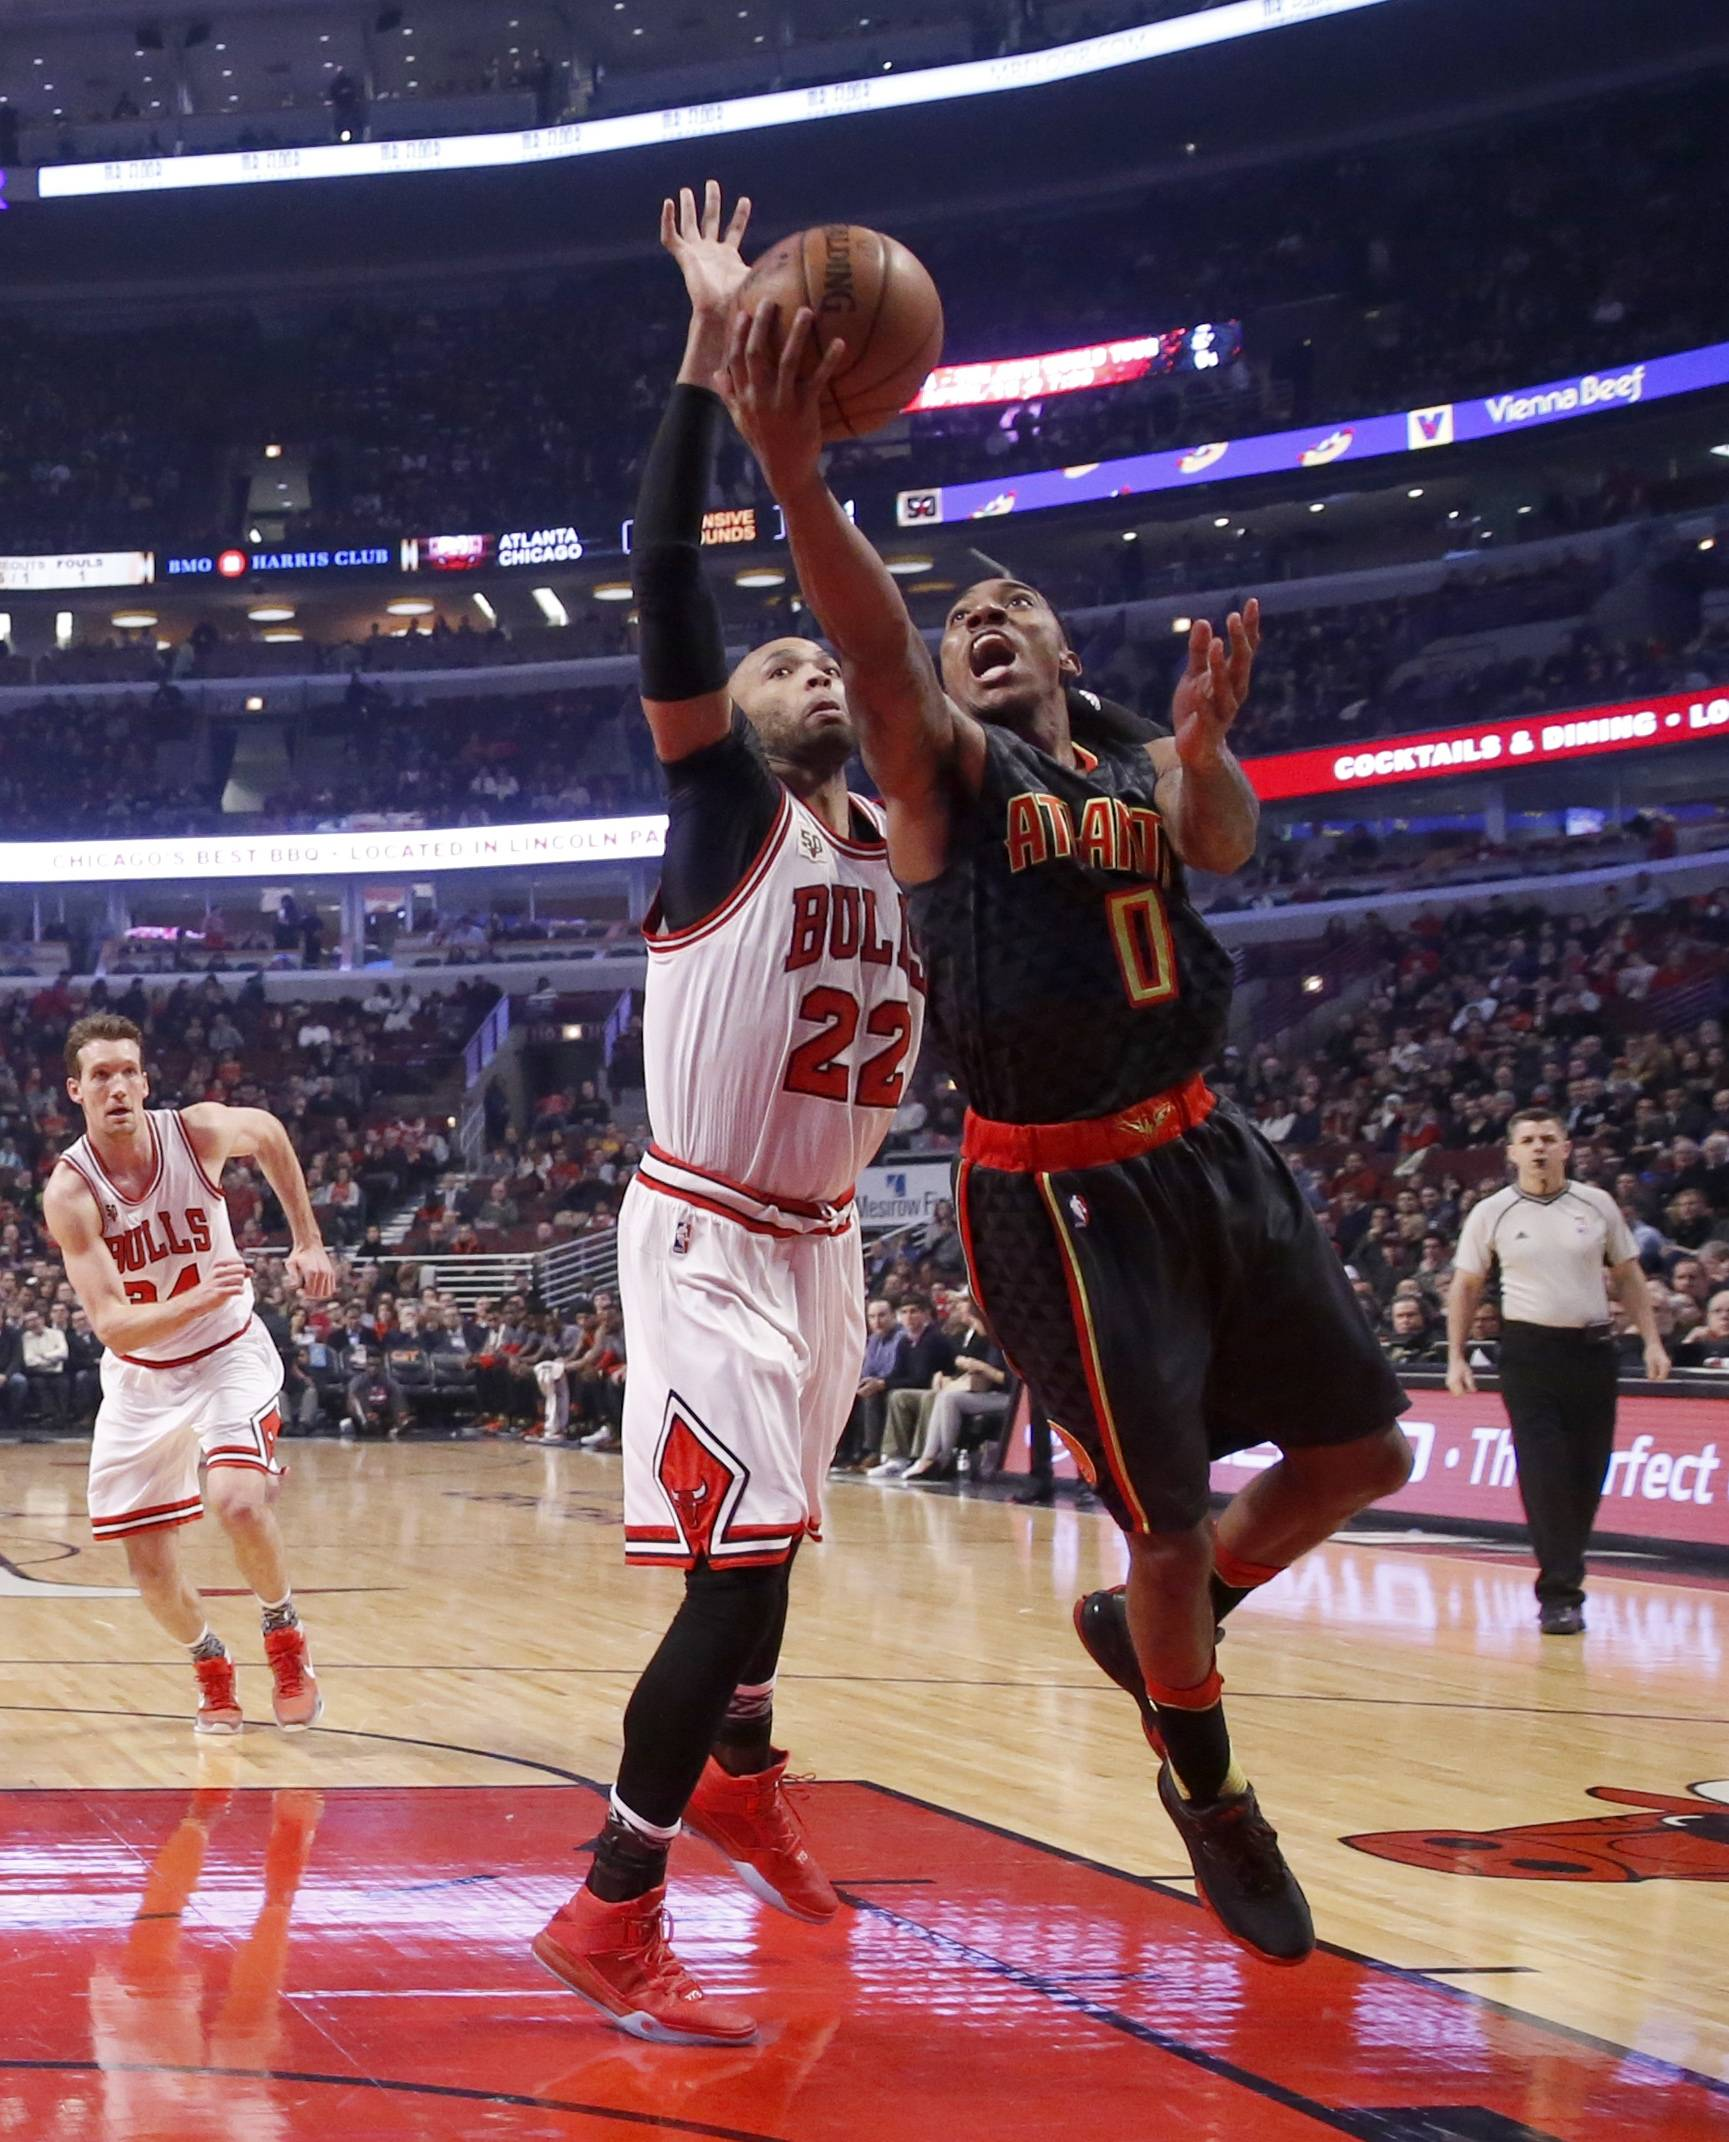 Atlanta Hawks guard Jeff Teague (0) drives past Chicago Bulls forward Taj Gibson during the first half of an NBA basketball game Wednesday, Feb. 10, 2016, in Chicago. (AP Photo/Charles Rex Arbogast)